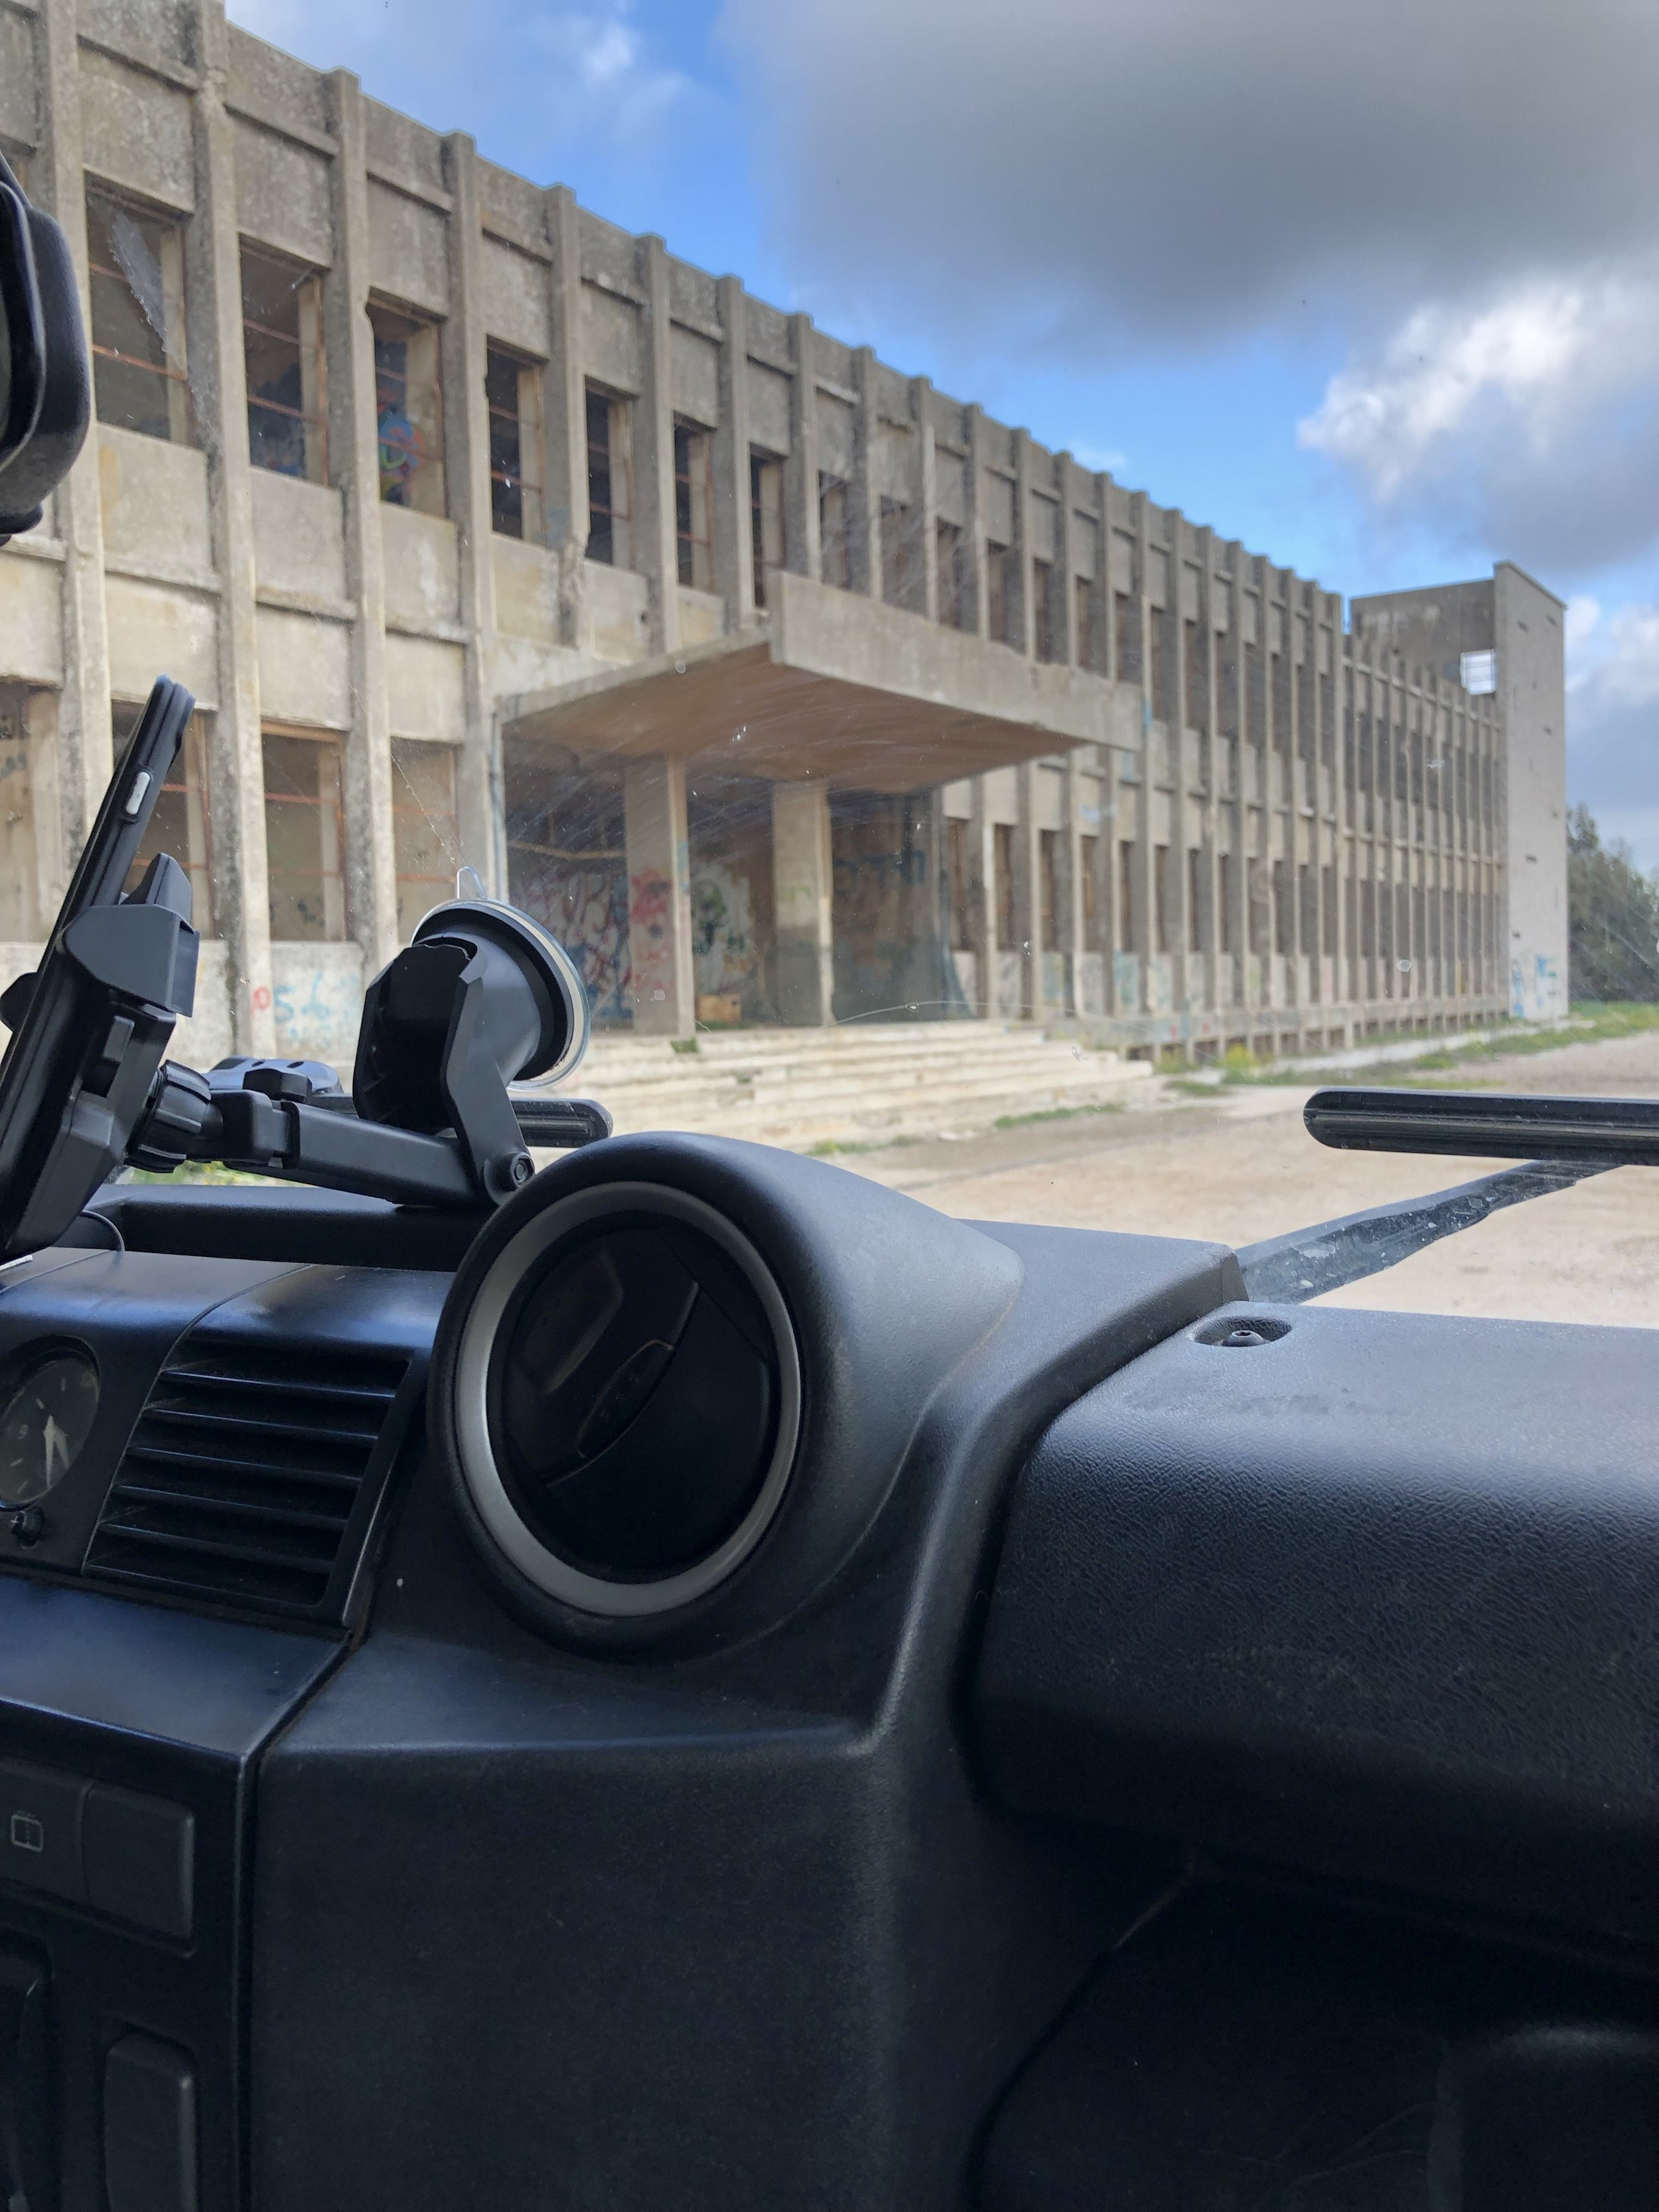 former Syrian Army HQ, Golan Heights